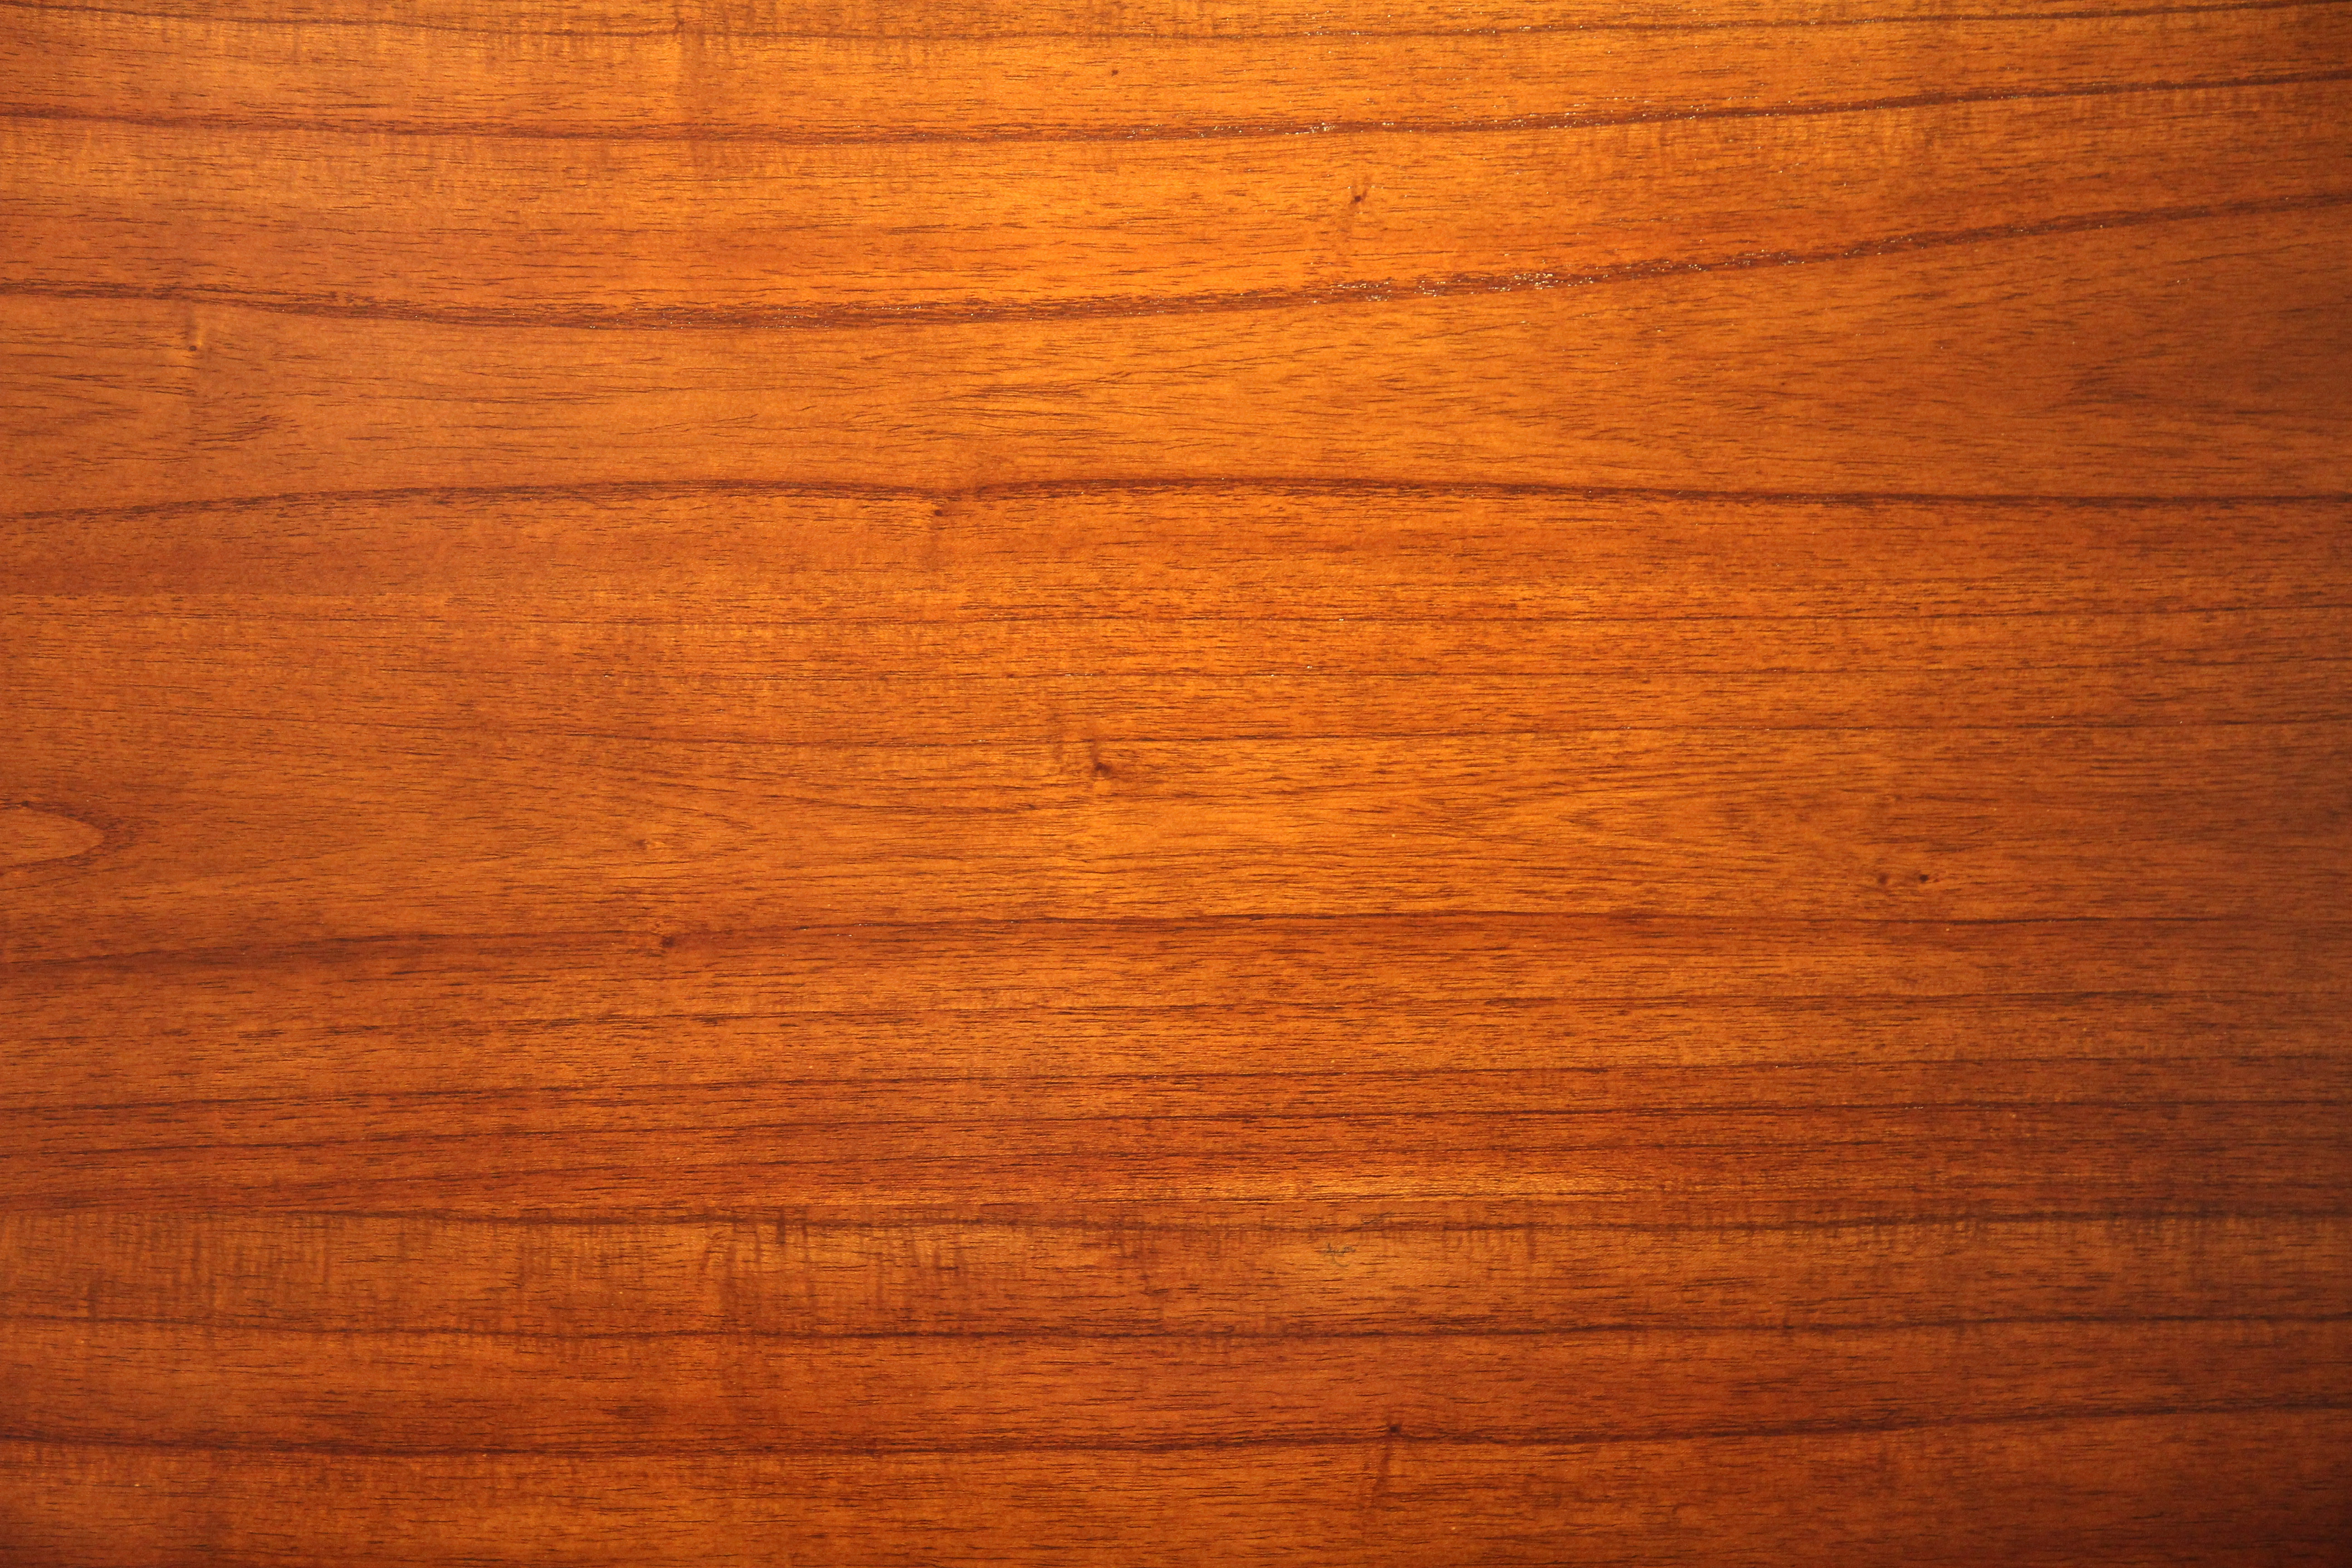 red wood texture grain natural wooden paneling surface photo wallpaper 5184x3456